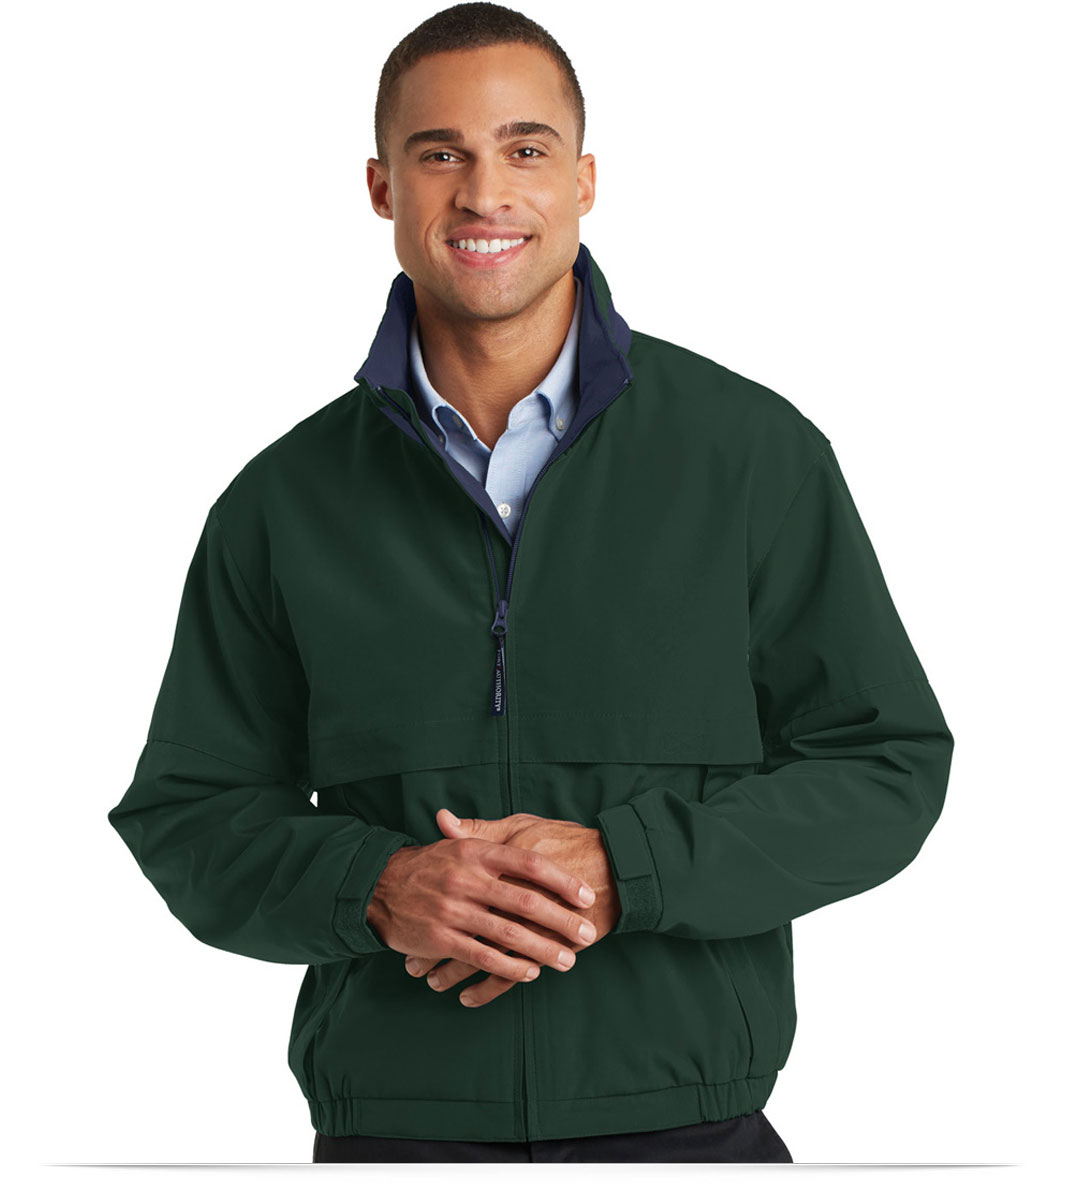 Business Logo Jacket